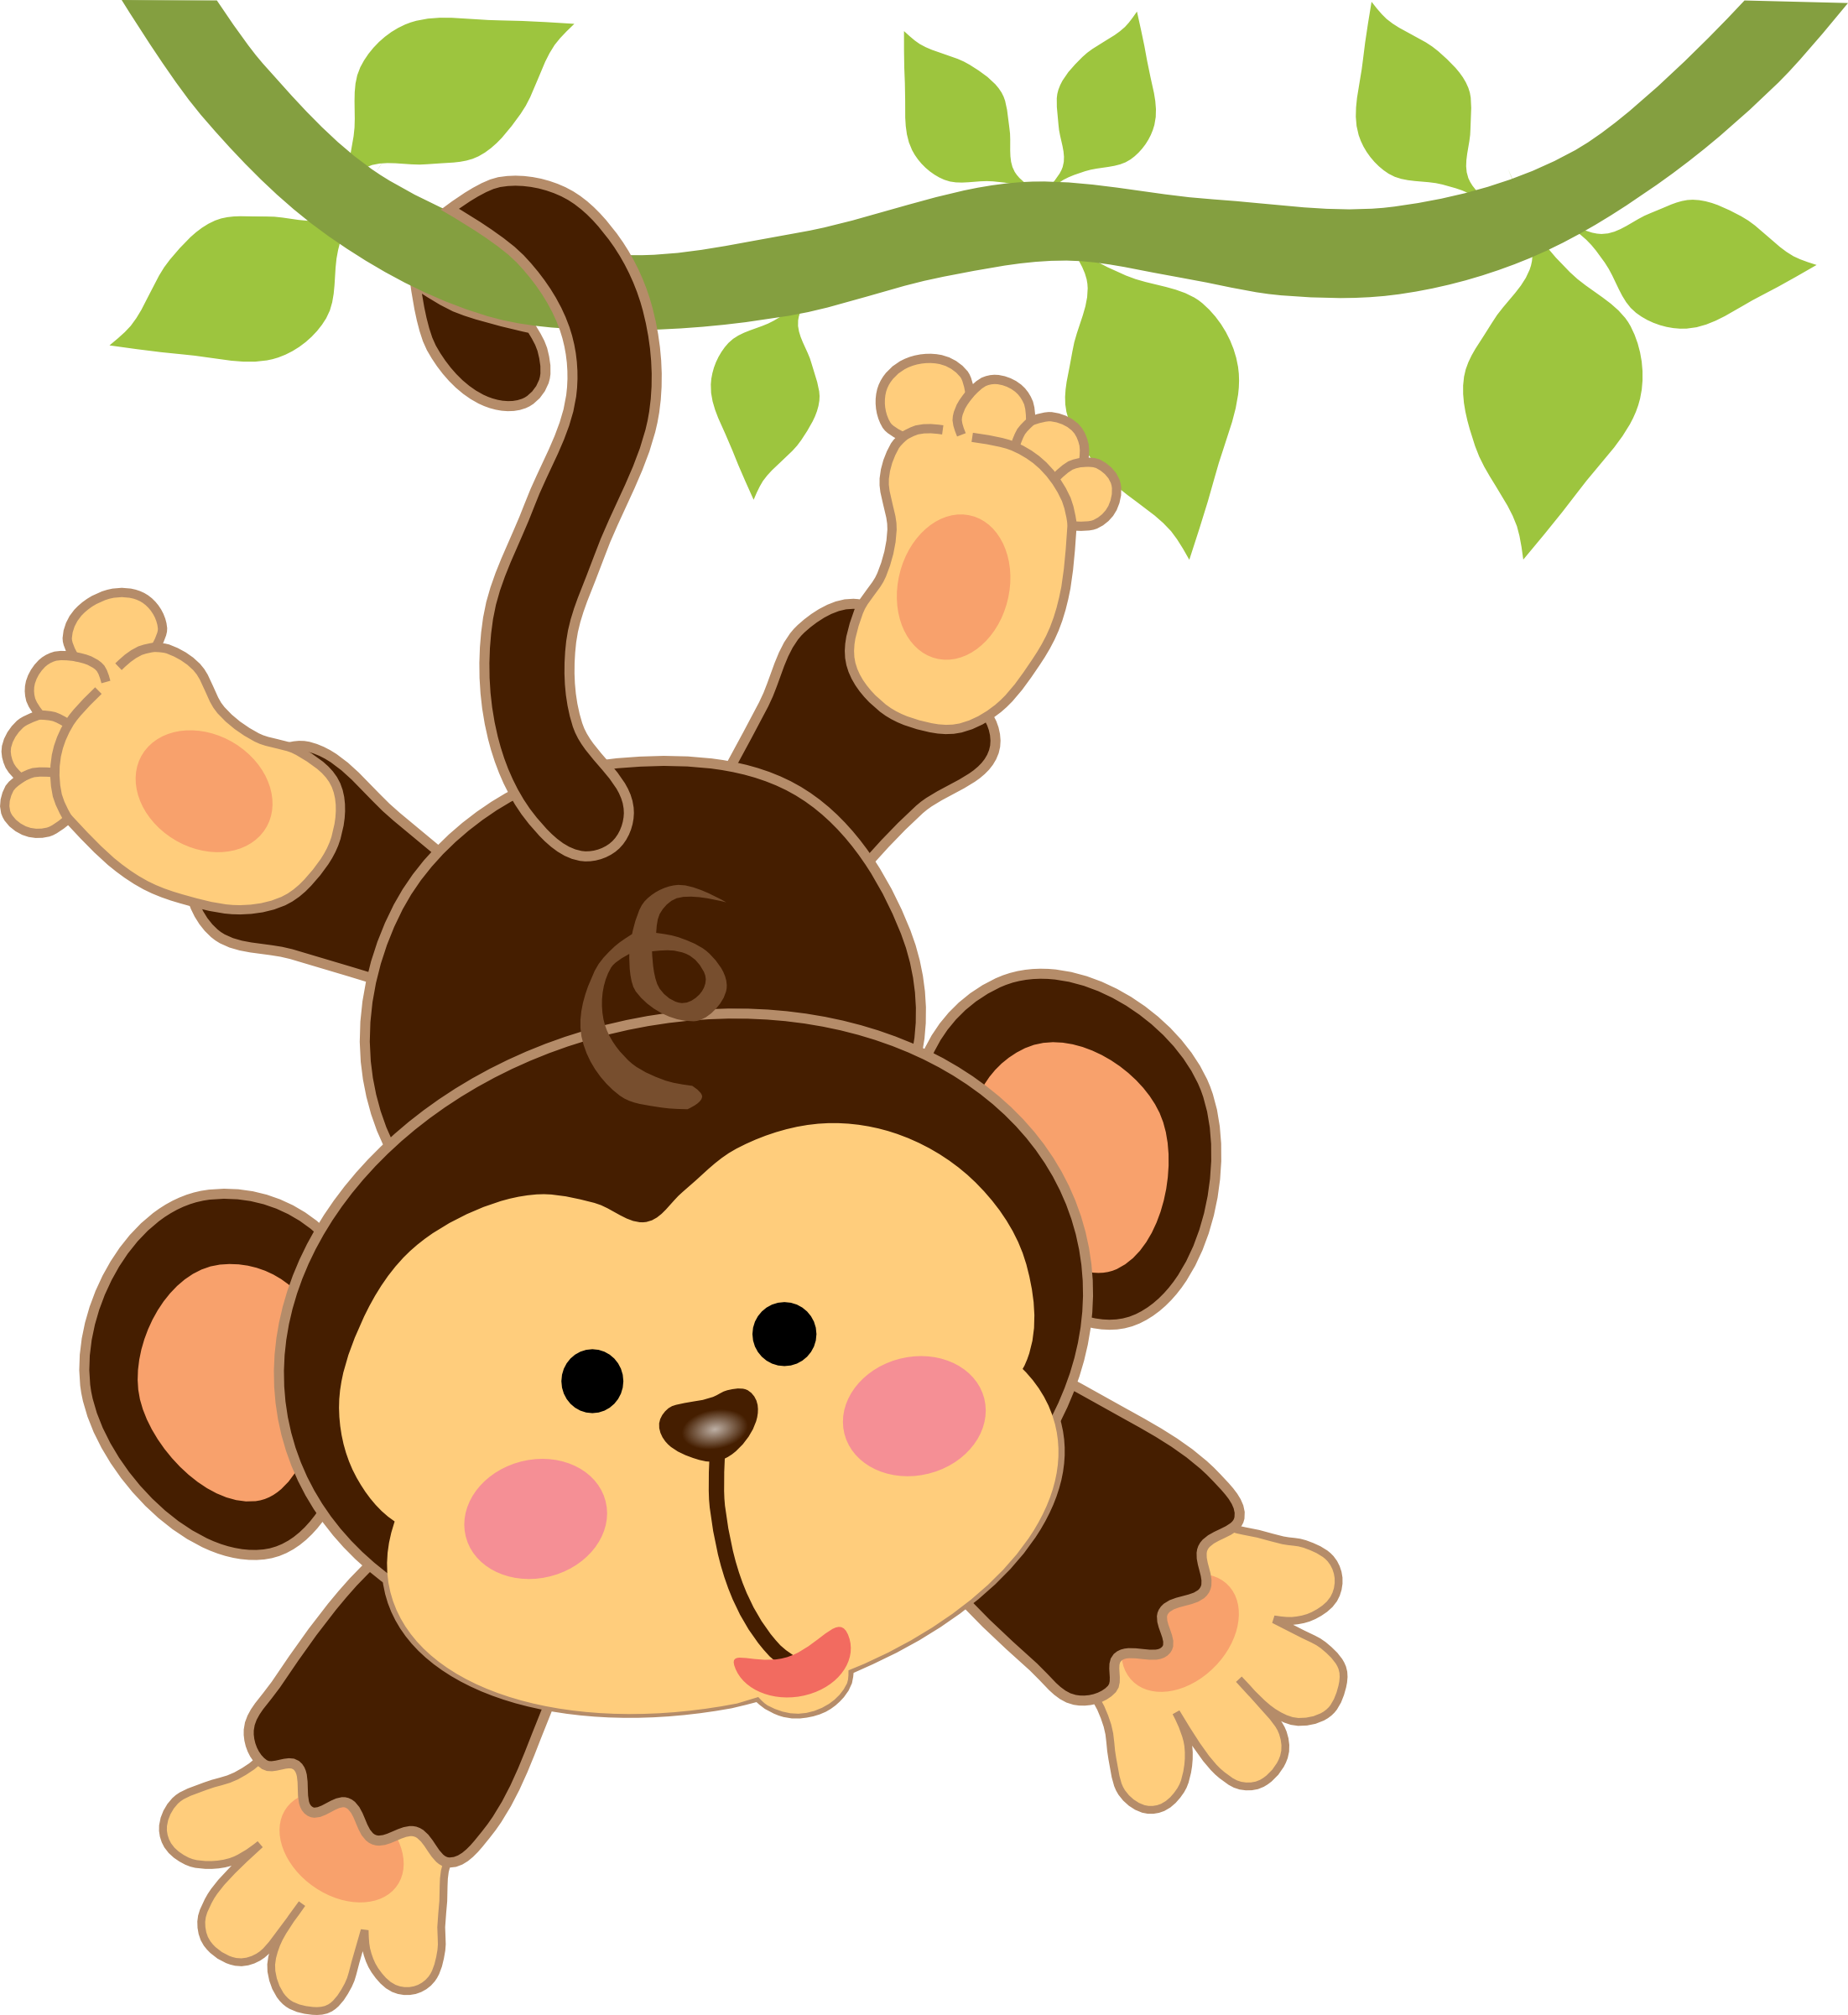 Safari kids clipart clipart images gallery for free download.